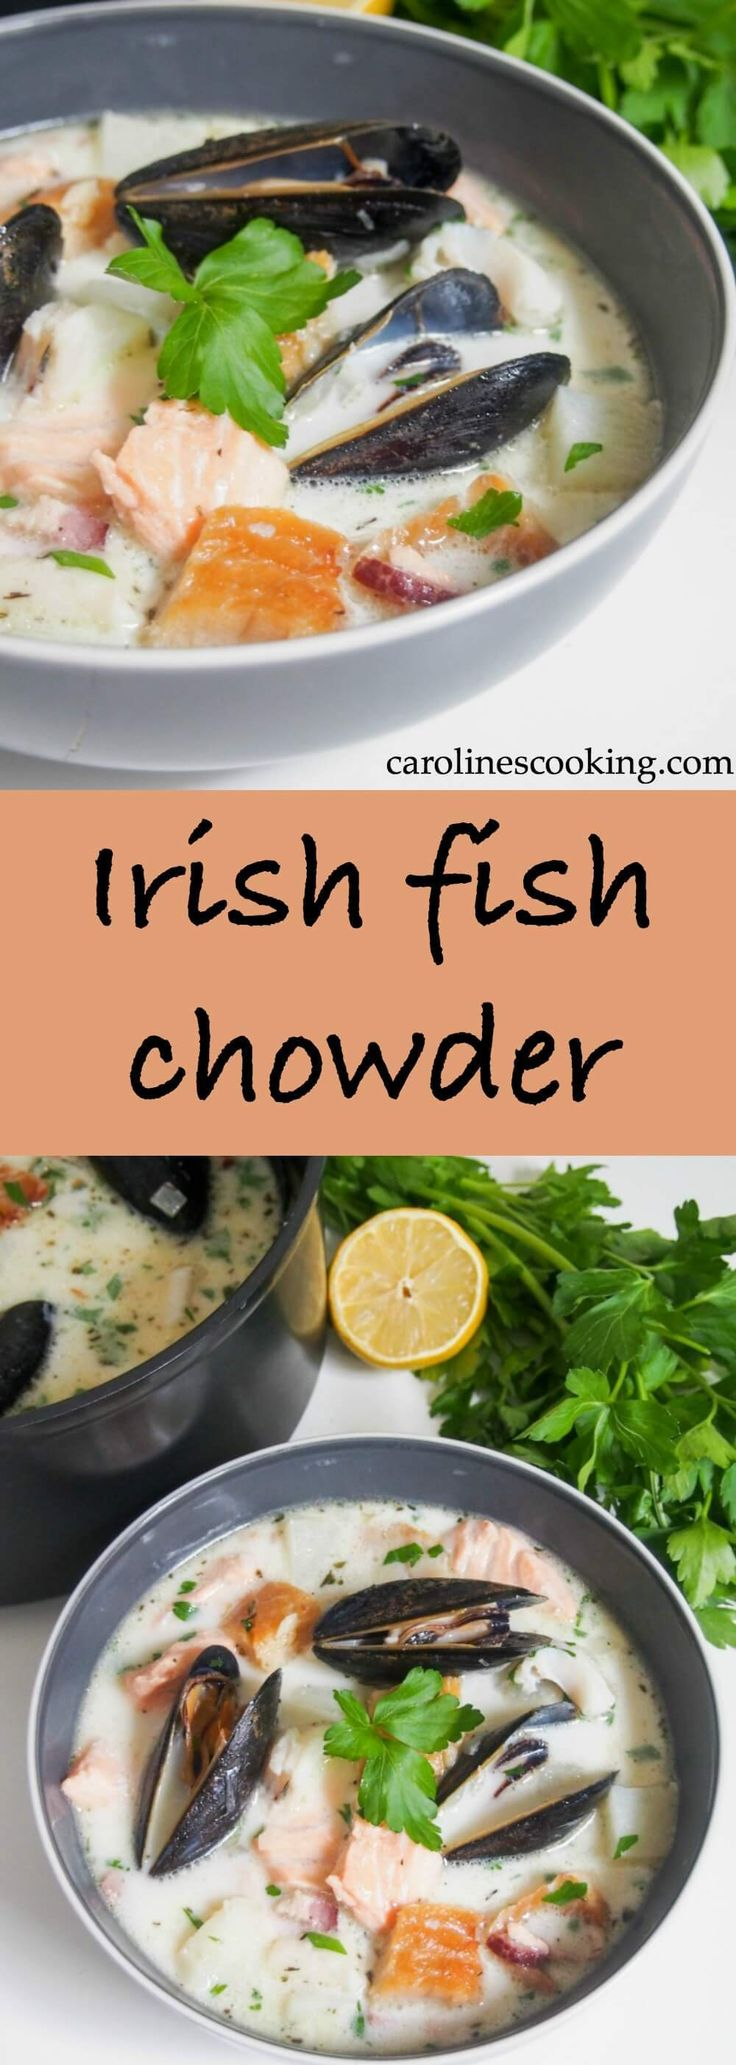 Irish fish chowder is a delicious mix of smoked and fresh fish in a light, gently creamy broth. Full of flavor, easy to make and perfect for lunch. #fish #chowder #soup